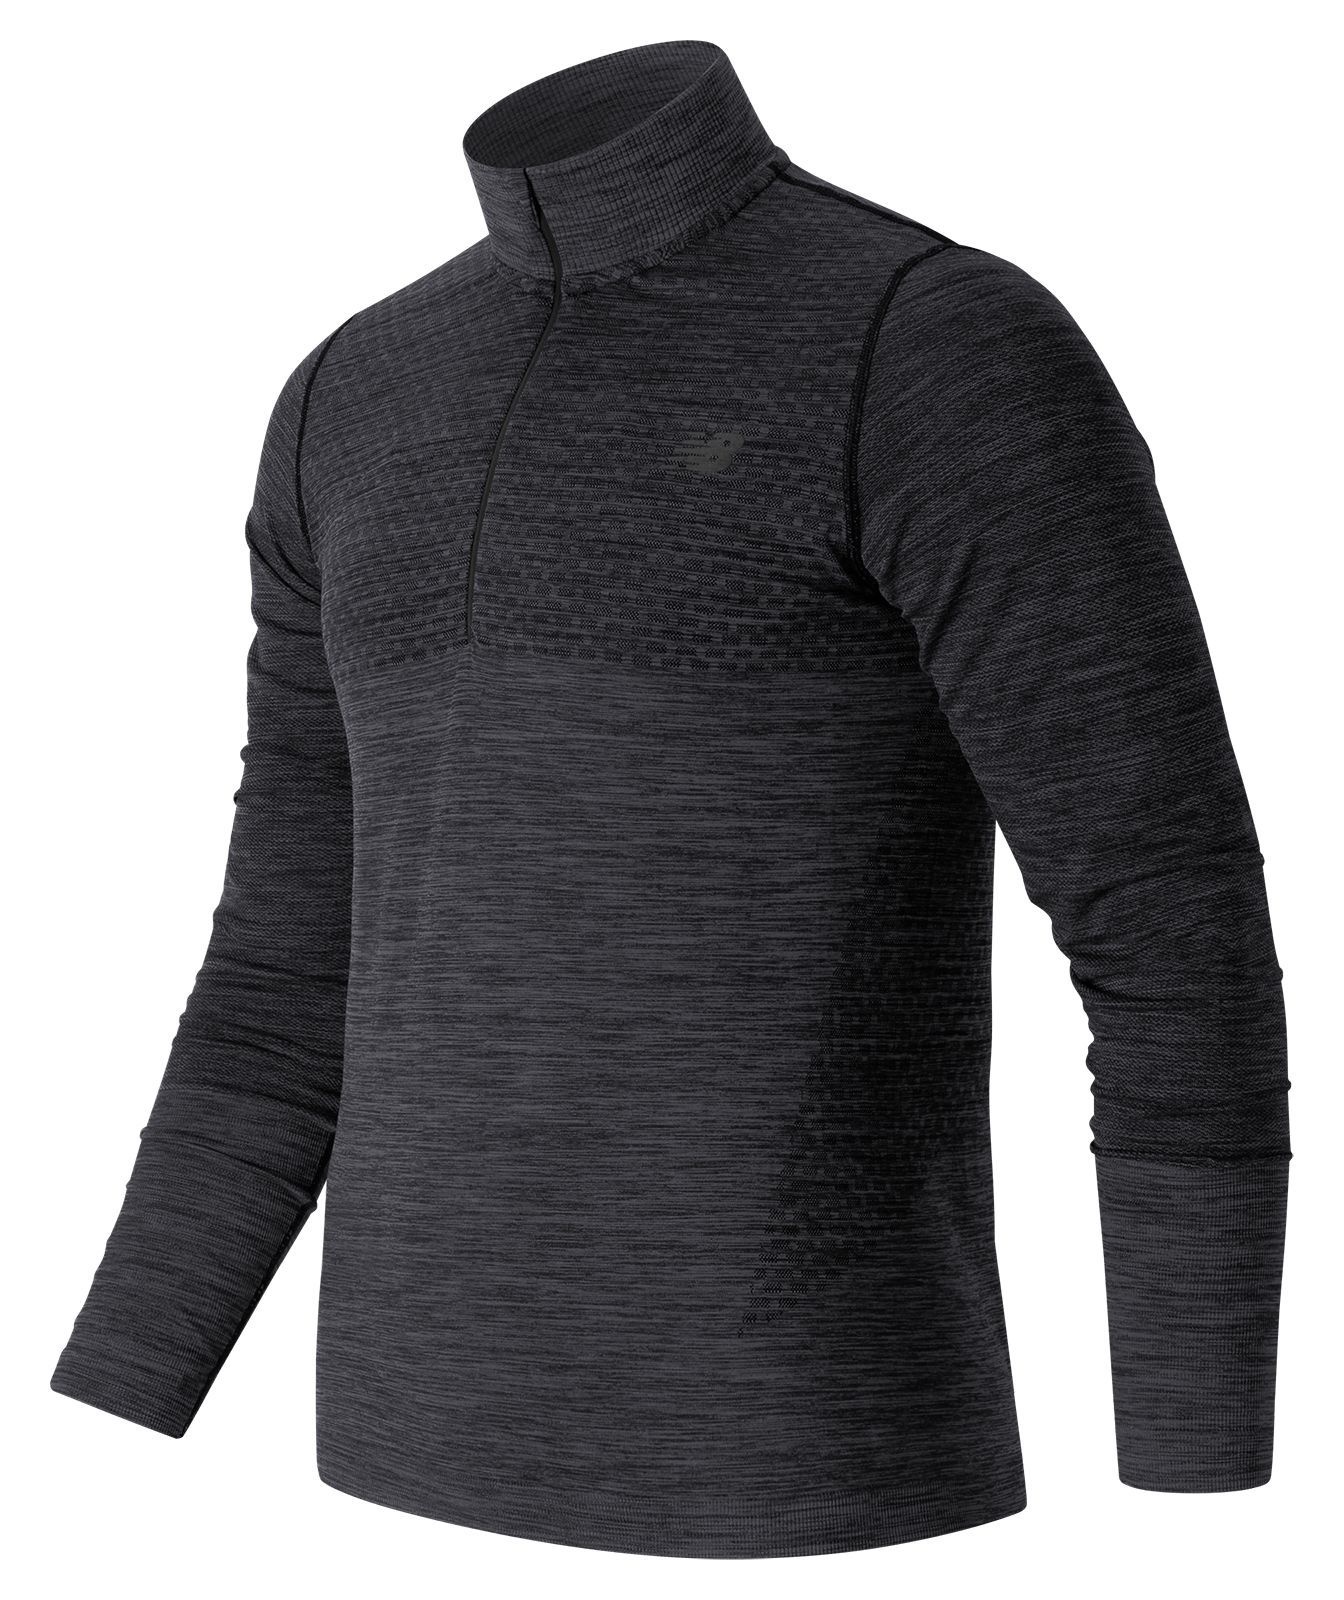 New Balance : M4M Seamless Quarter Zip : Unisex Performance : MT63014BKH